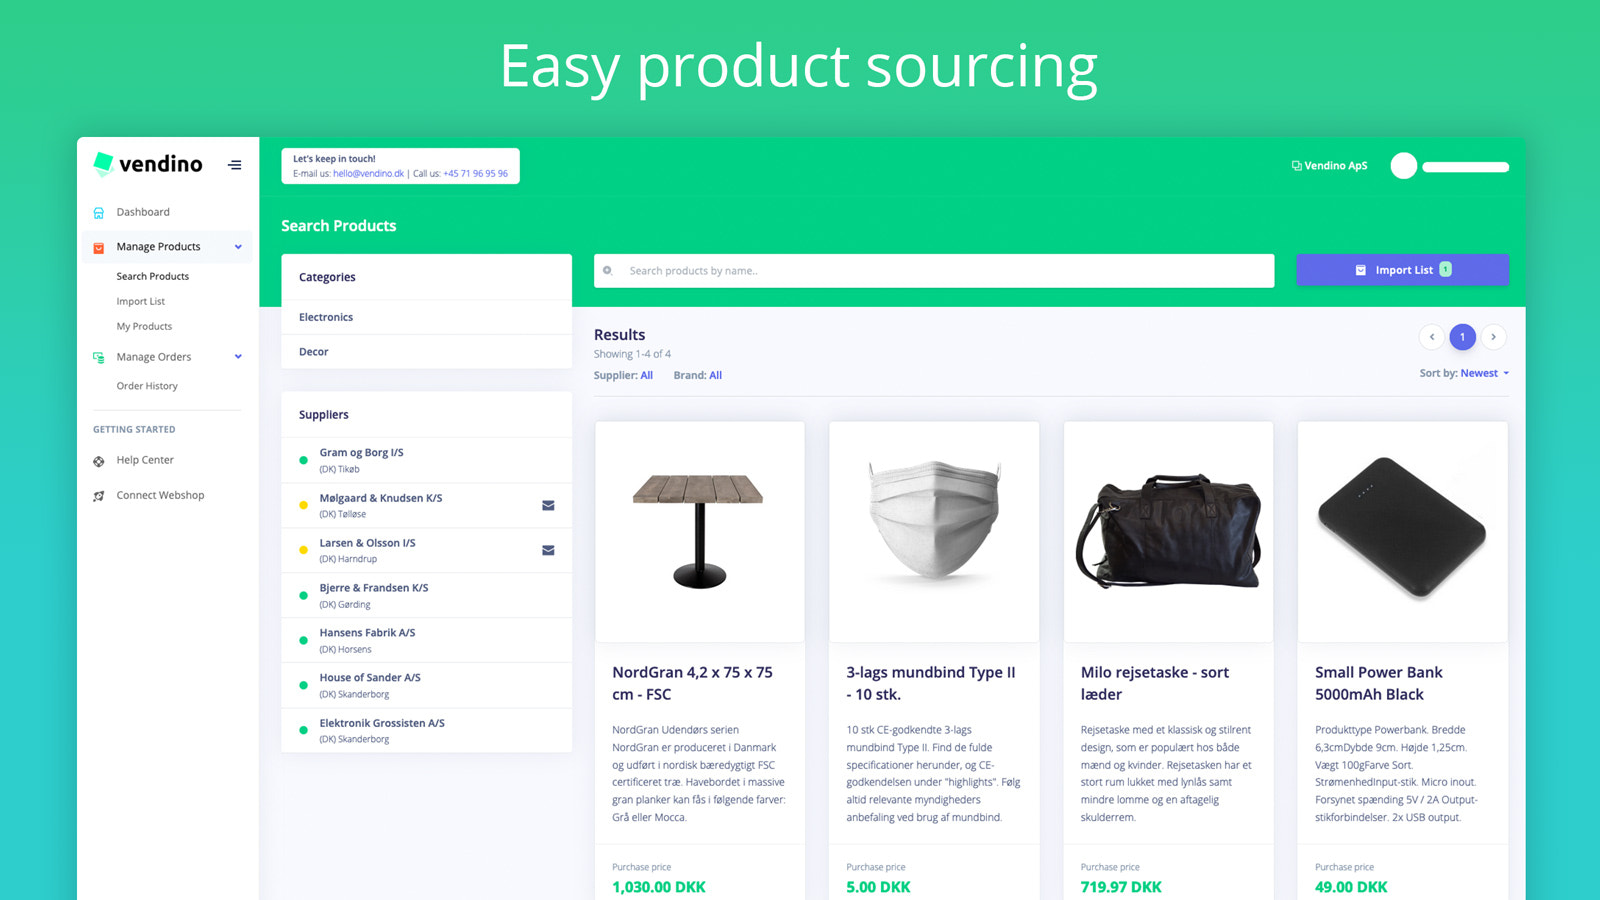 Easy product sourcing